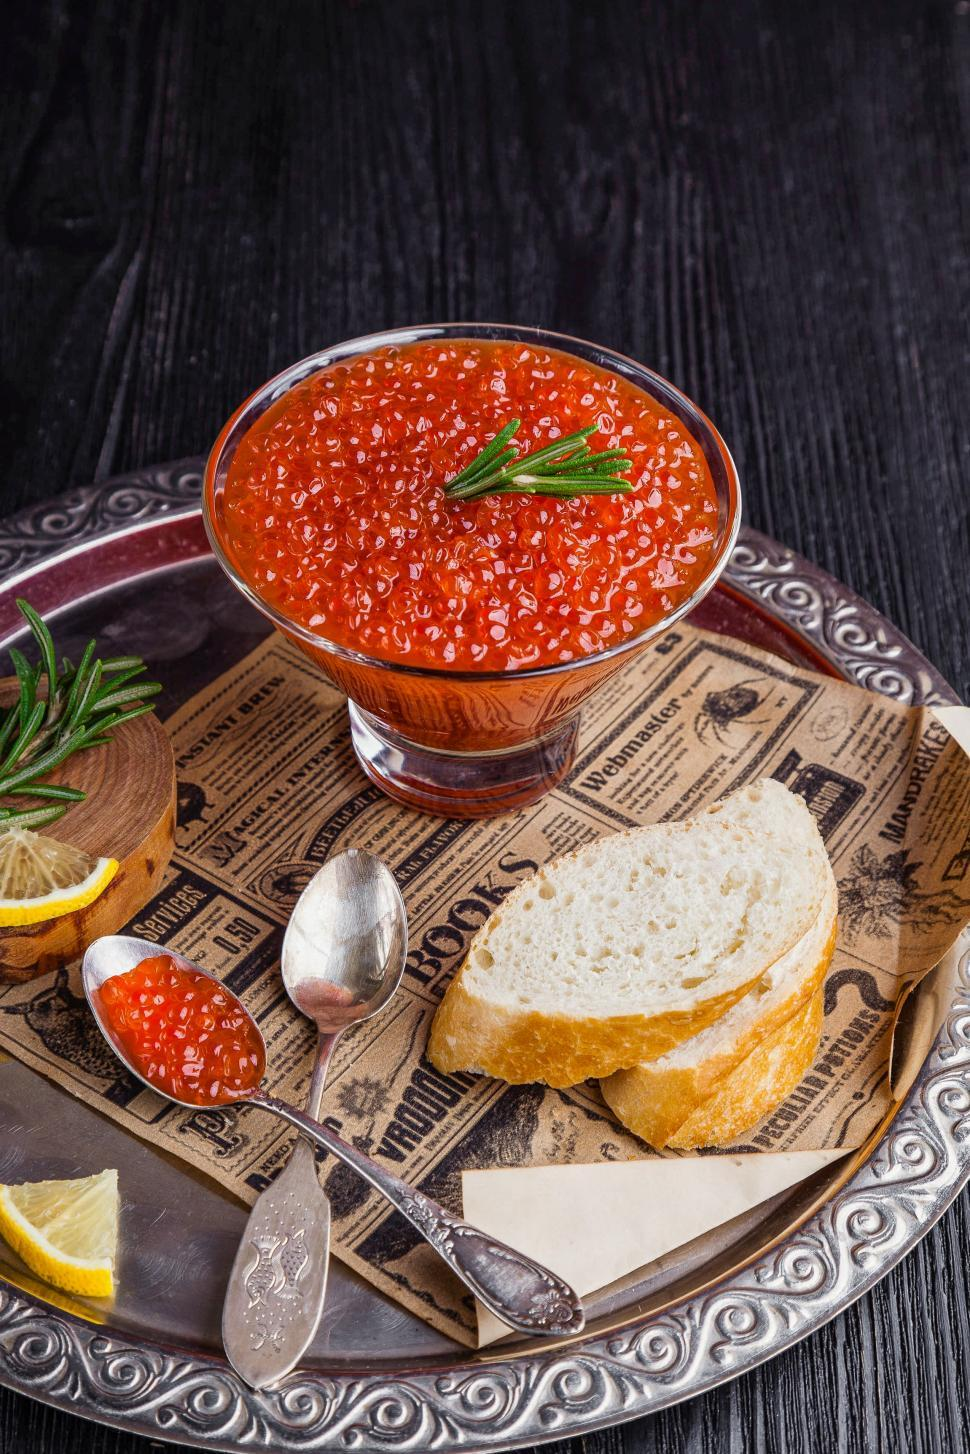 Download Free Stock Photo of Close up of a bowl of red caviar garnished with rosemary leaves